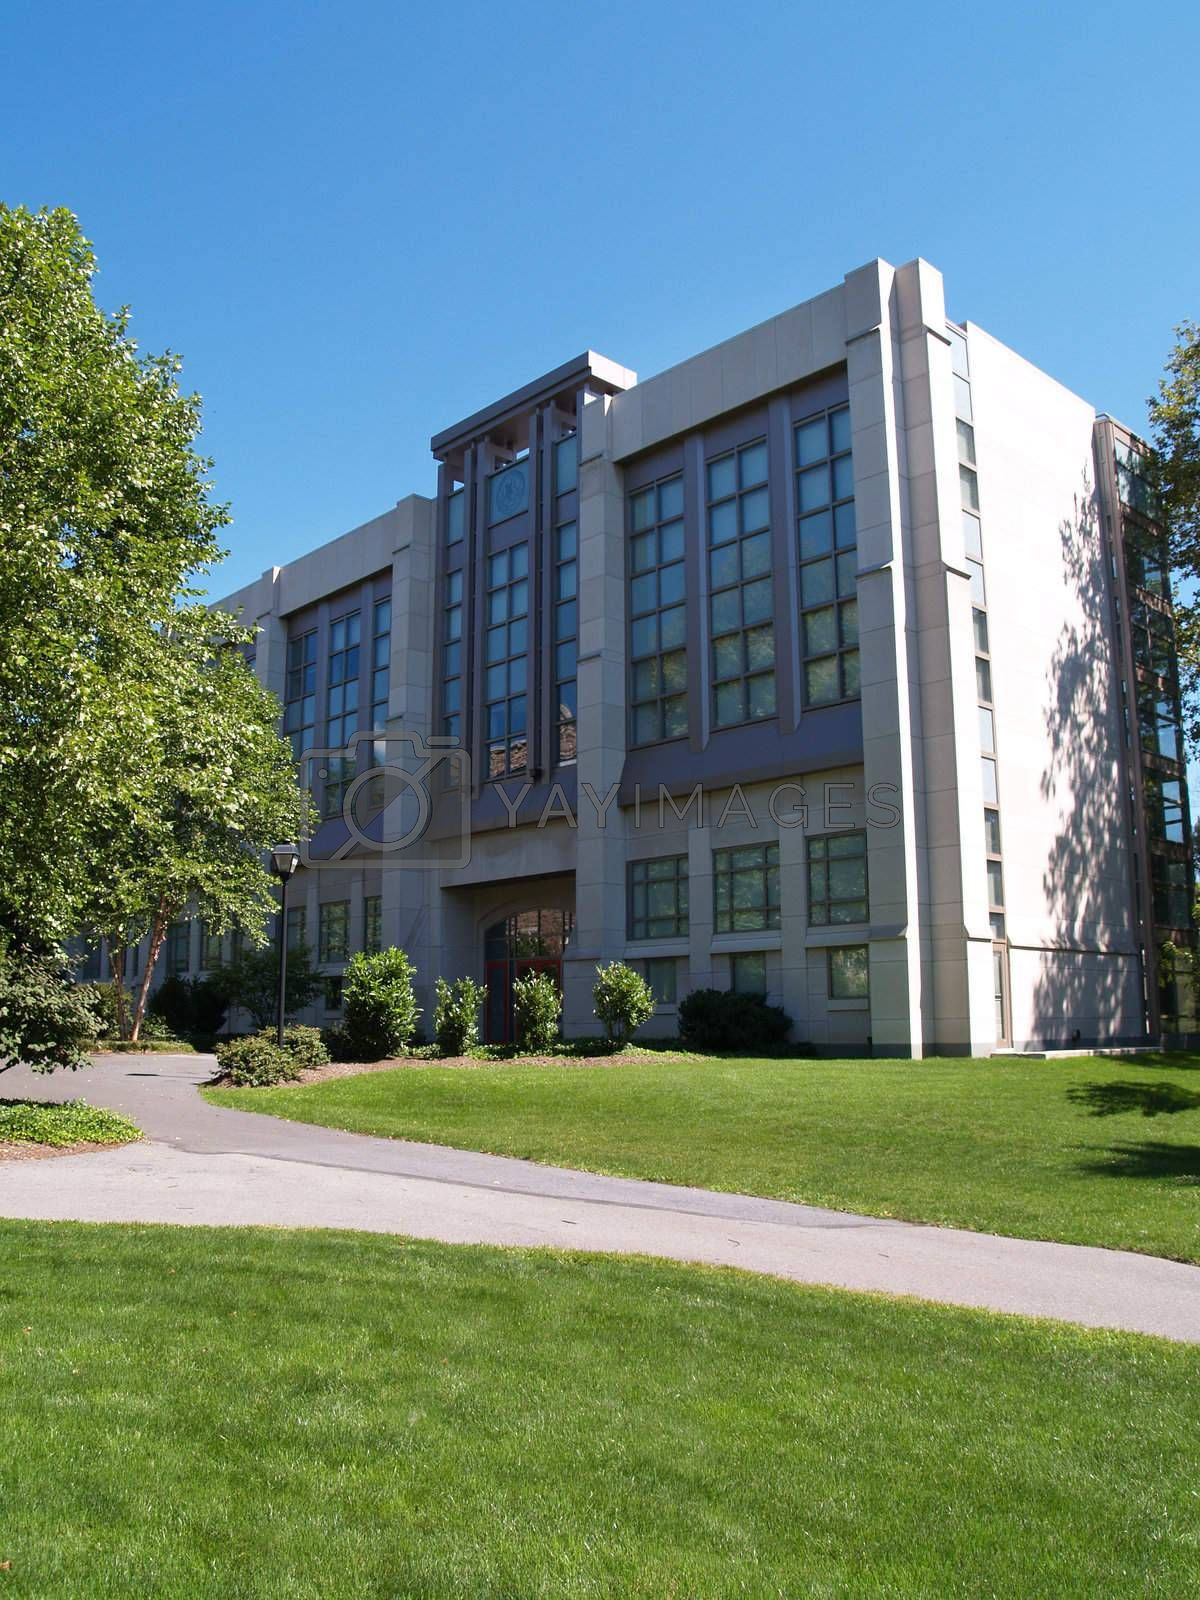 Moyer Hall on the campus of Muhlenberg College in Allentown, Pennsylvania